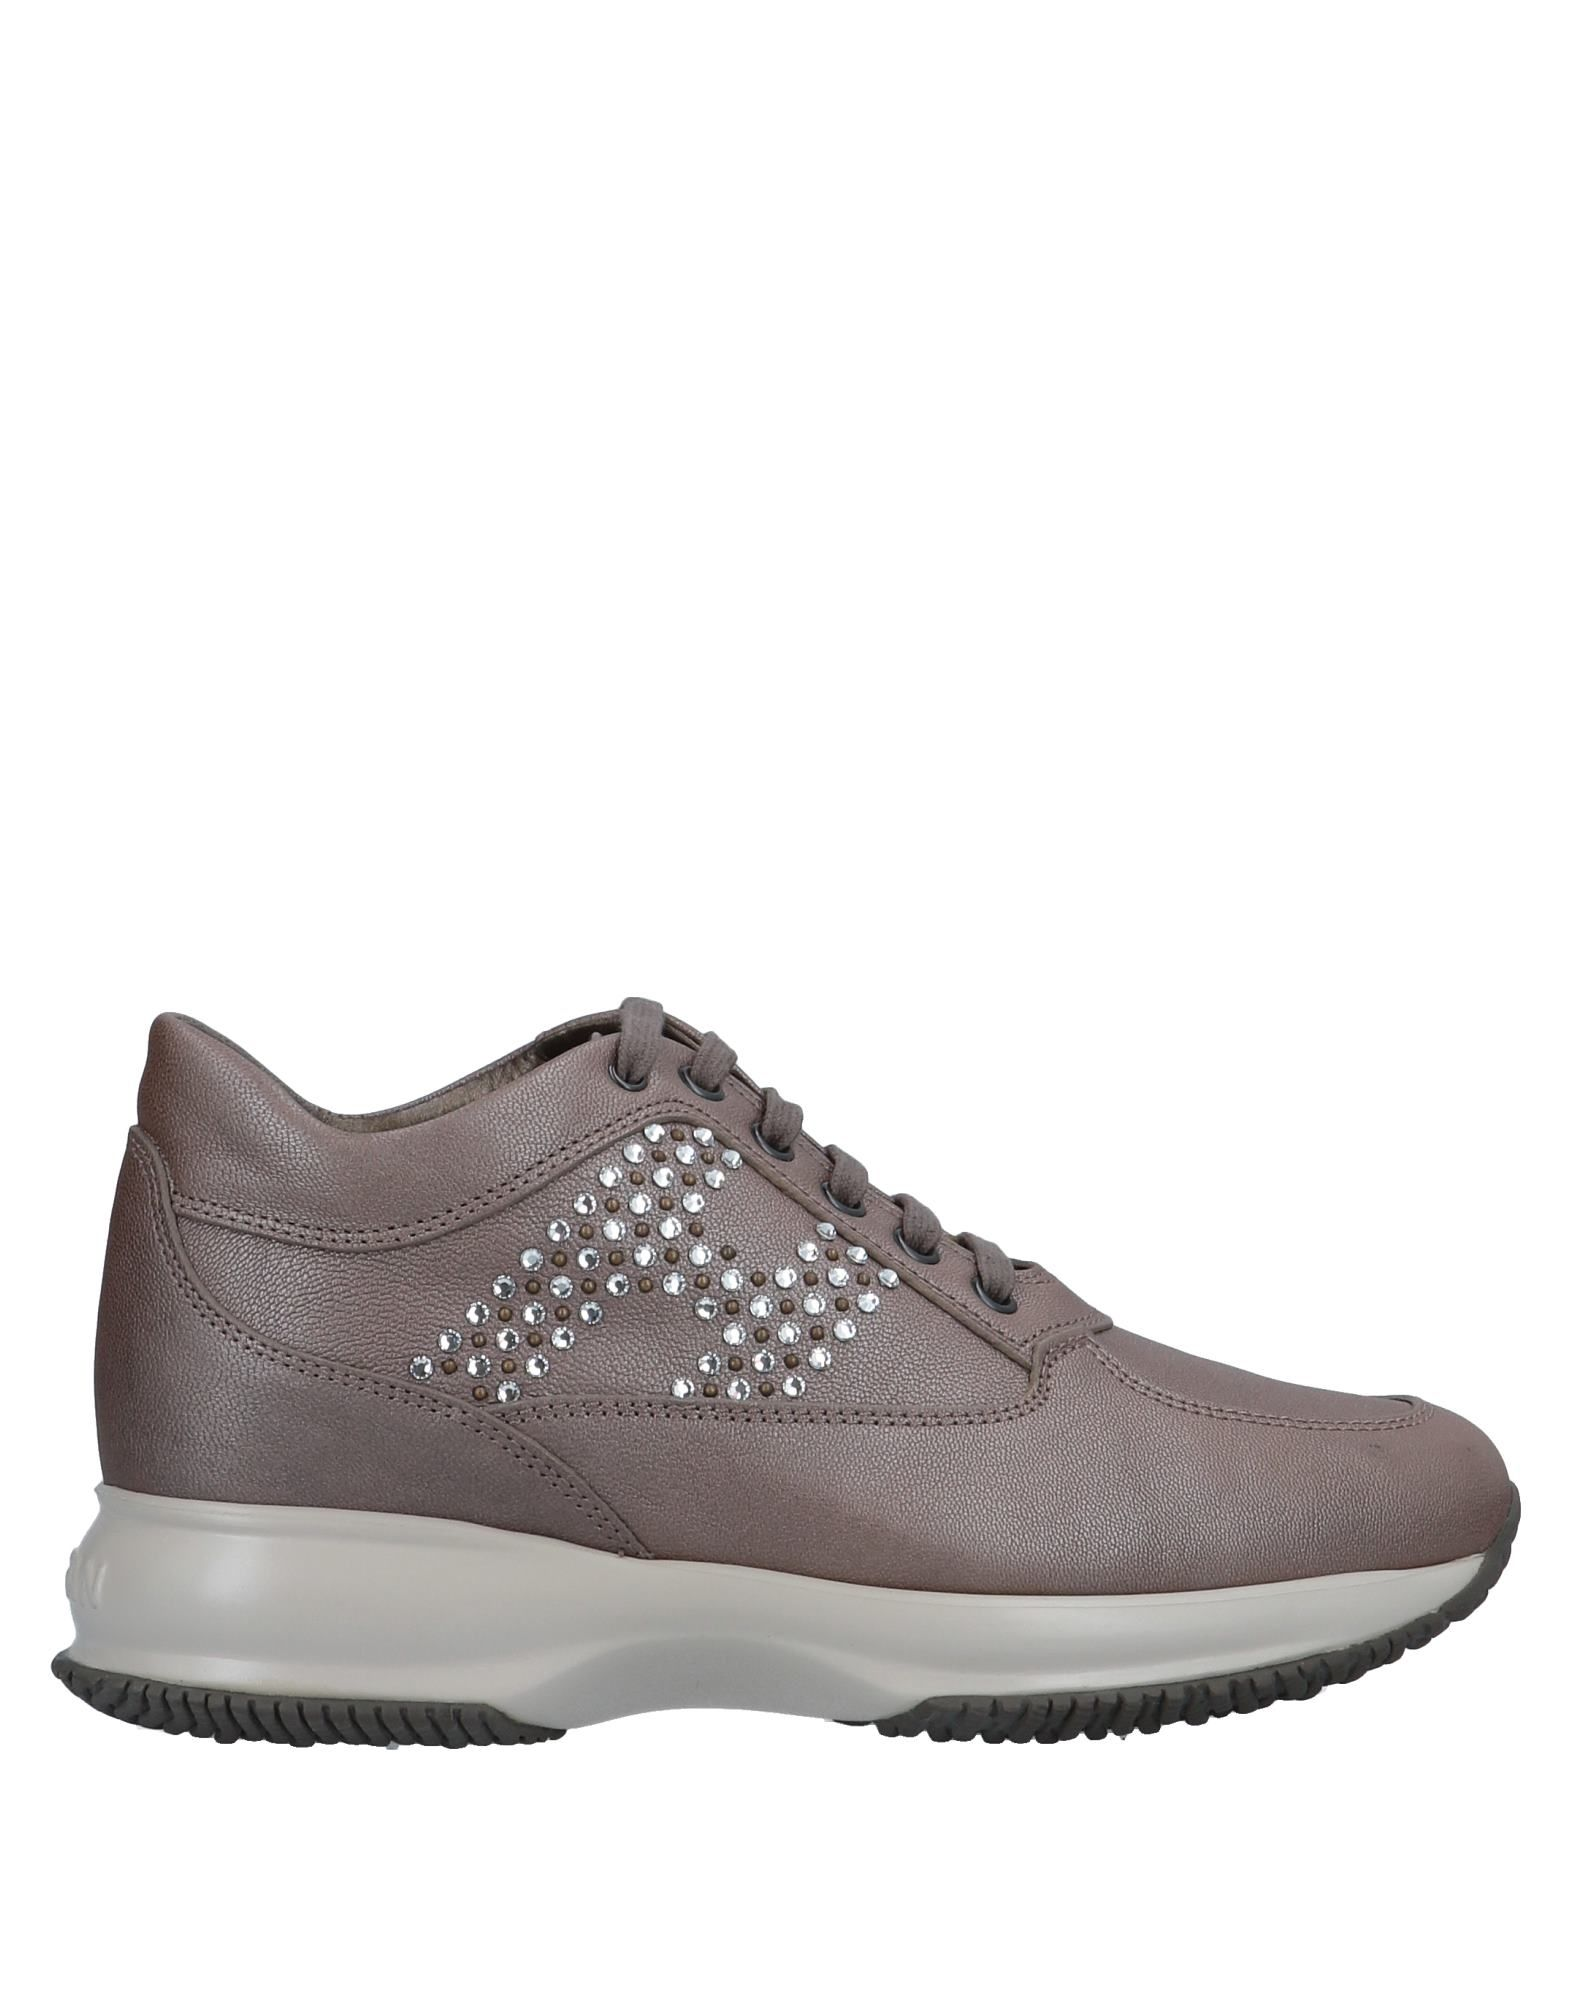 Hogan Sneakers - Women Hogan Sneakers online on 11567747KX  United Kingdom - 11567747KX on 0beb3e